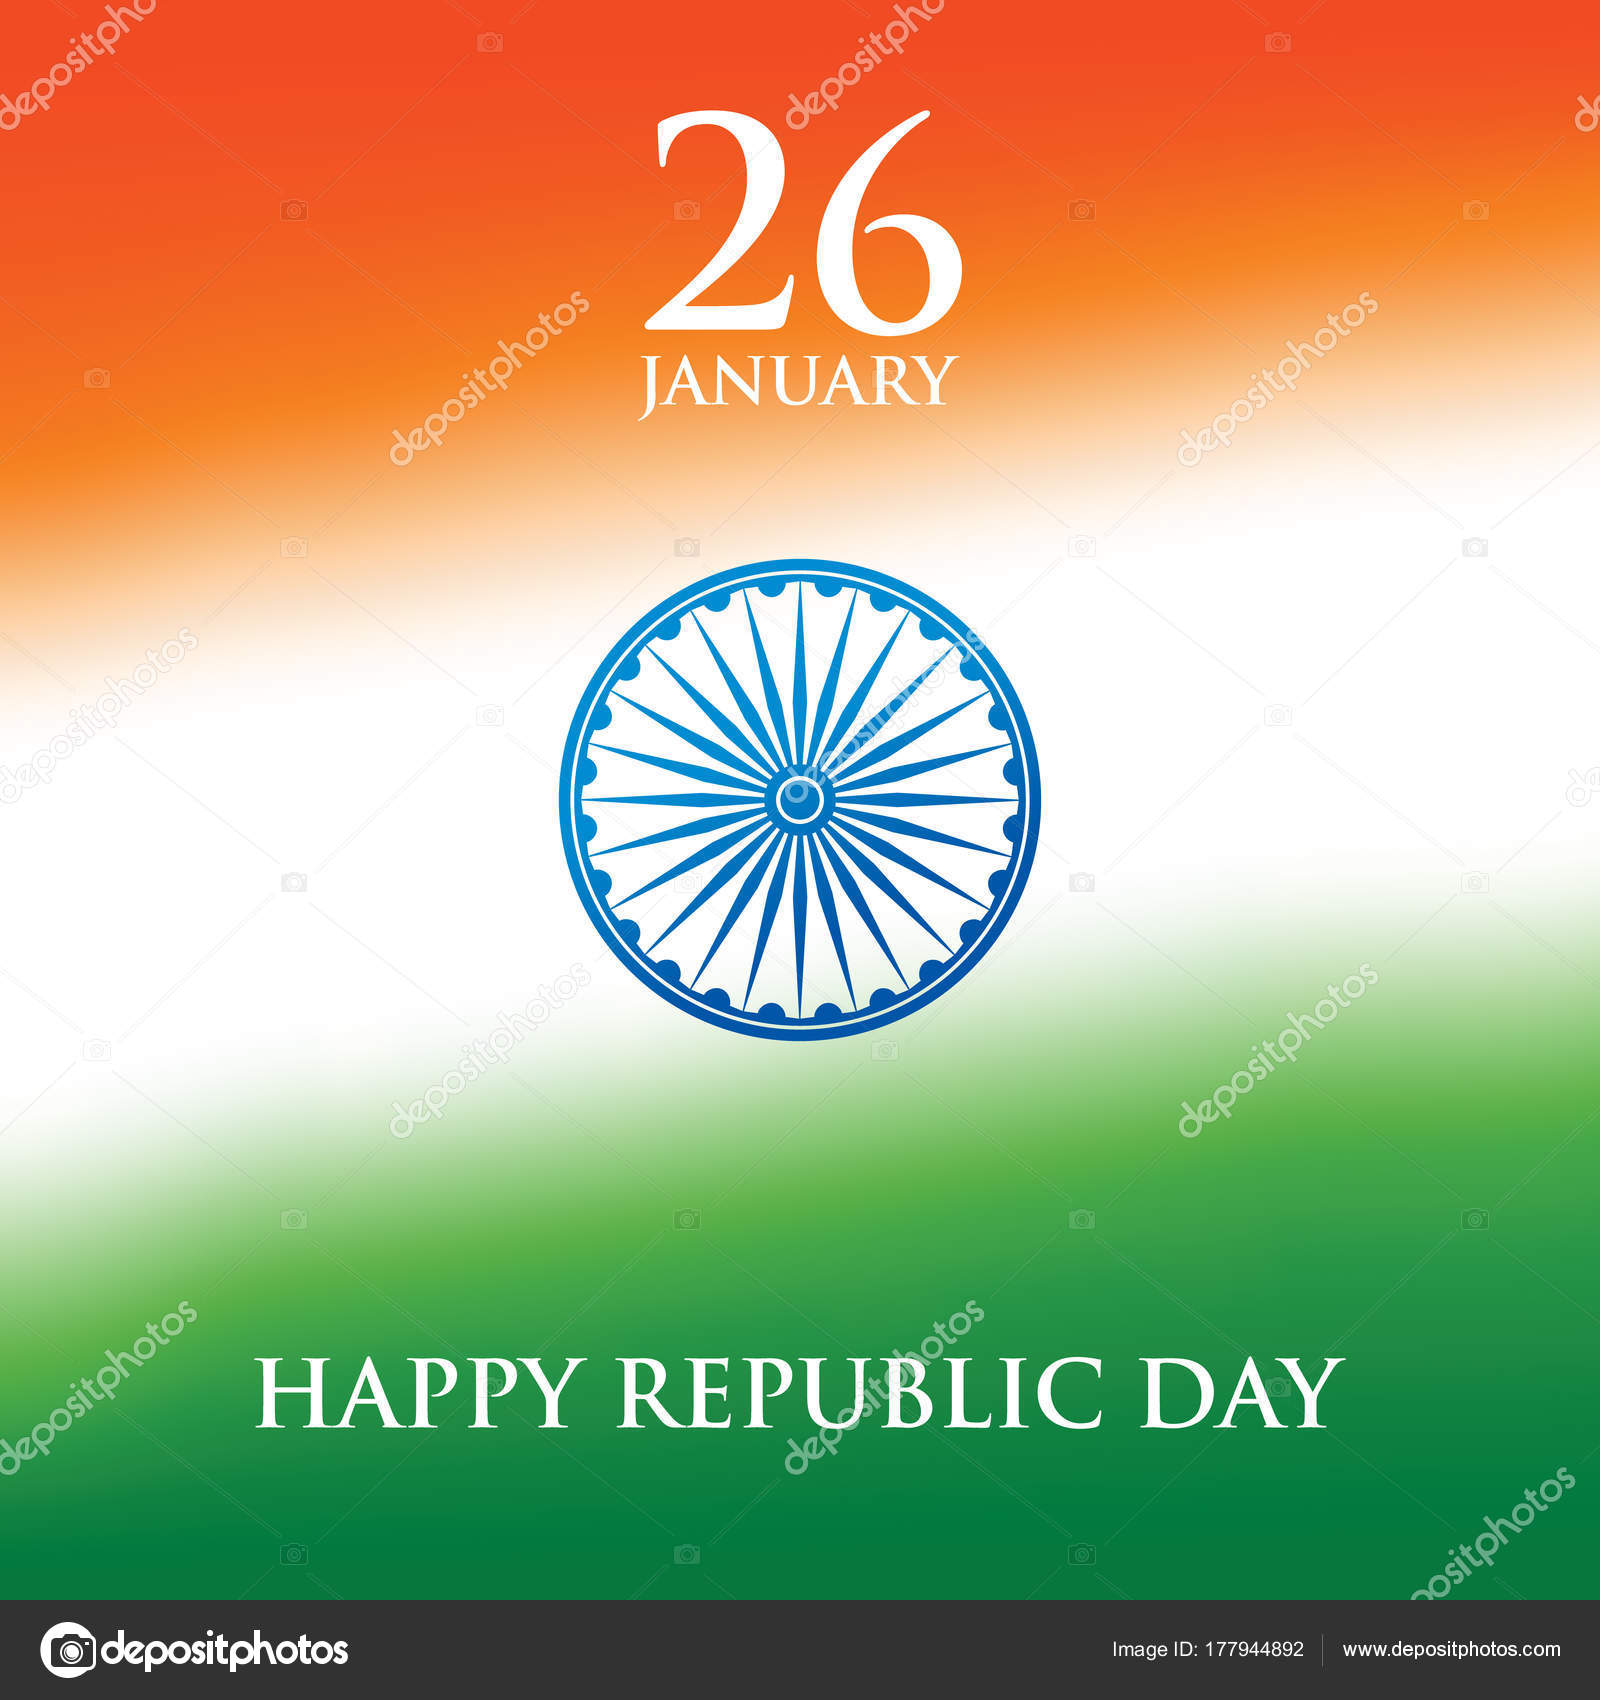 India republic day greeting card design vector illustration january india republic day greeting card design vector illustration january republic stock vector m4hsunfo